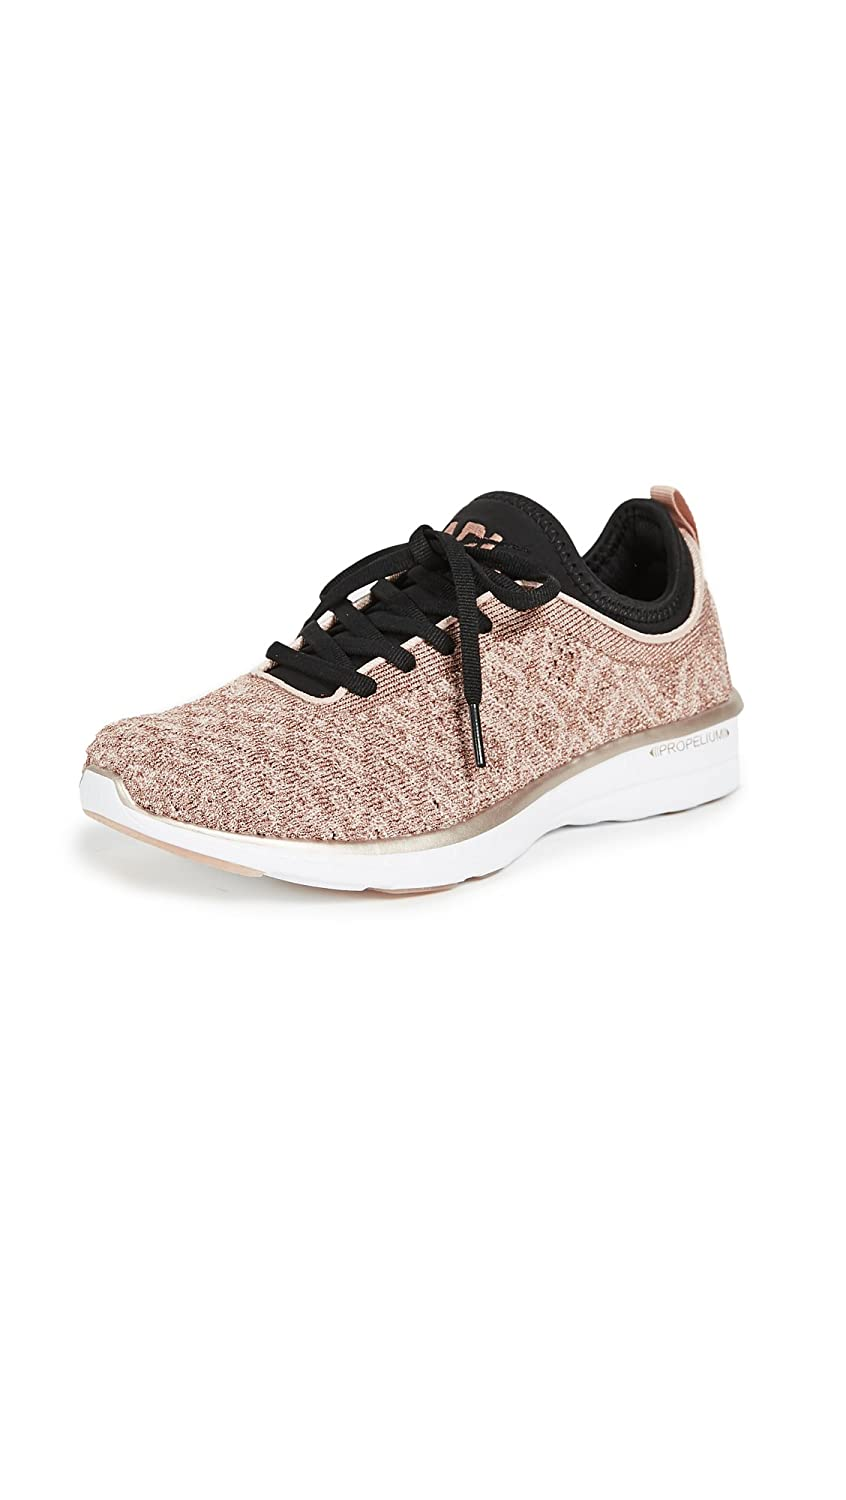 APL: Athletic Propulsion Labs Women's Techloom Phantom Sneakers B078HFWFNC 6.5 B(M) US|Rose Gold/Black